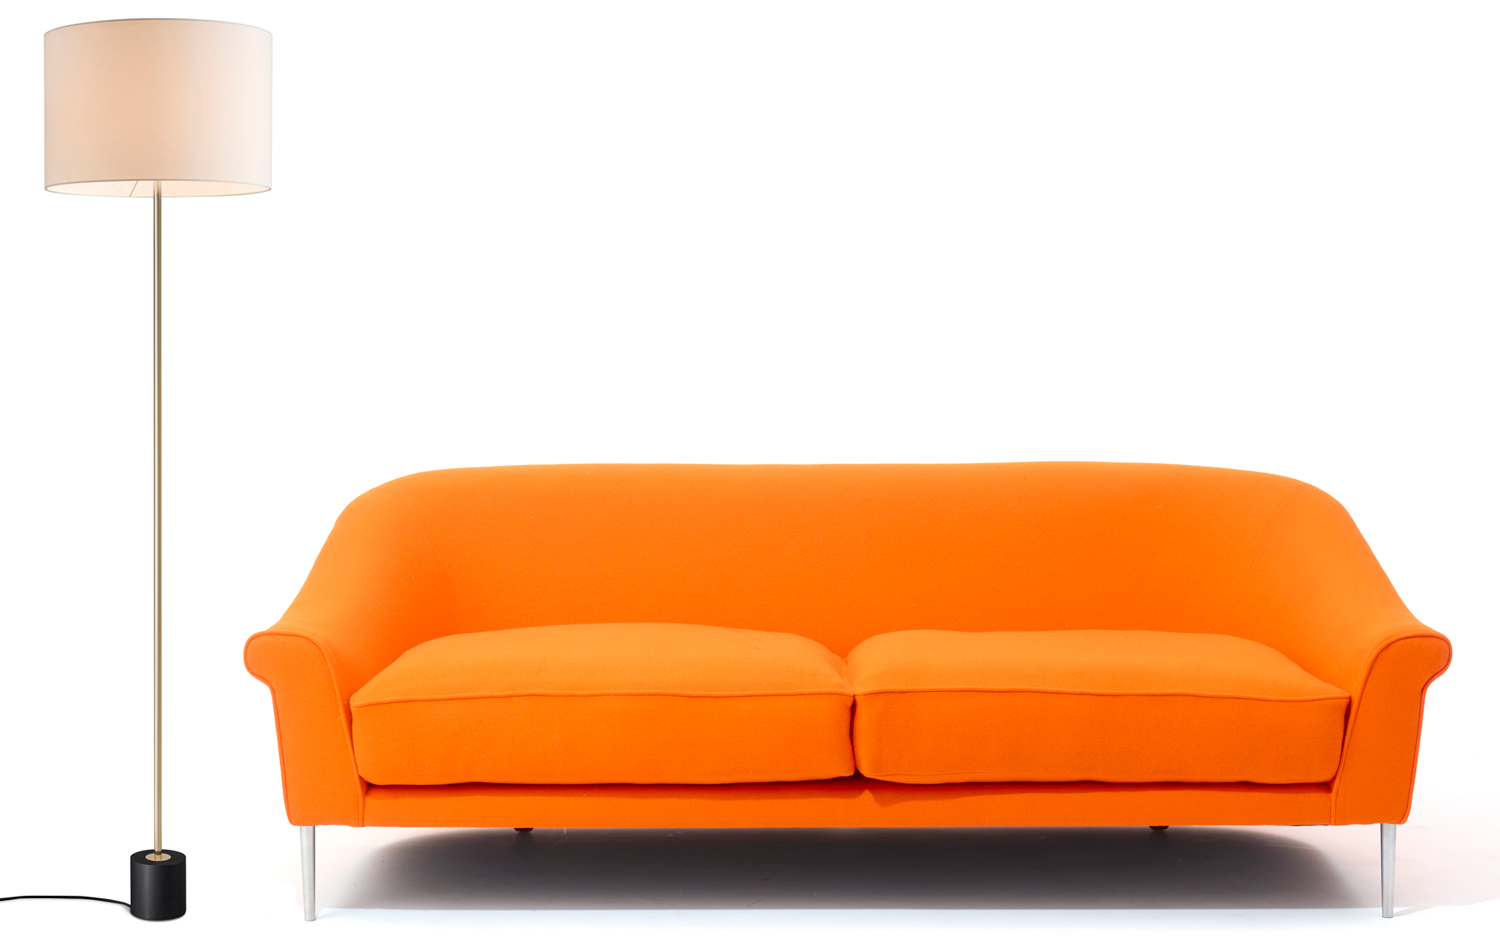 Solstice-three-seat-sofa-by-Matthew-Hilton-for-SCP-2